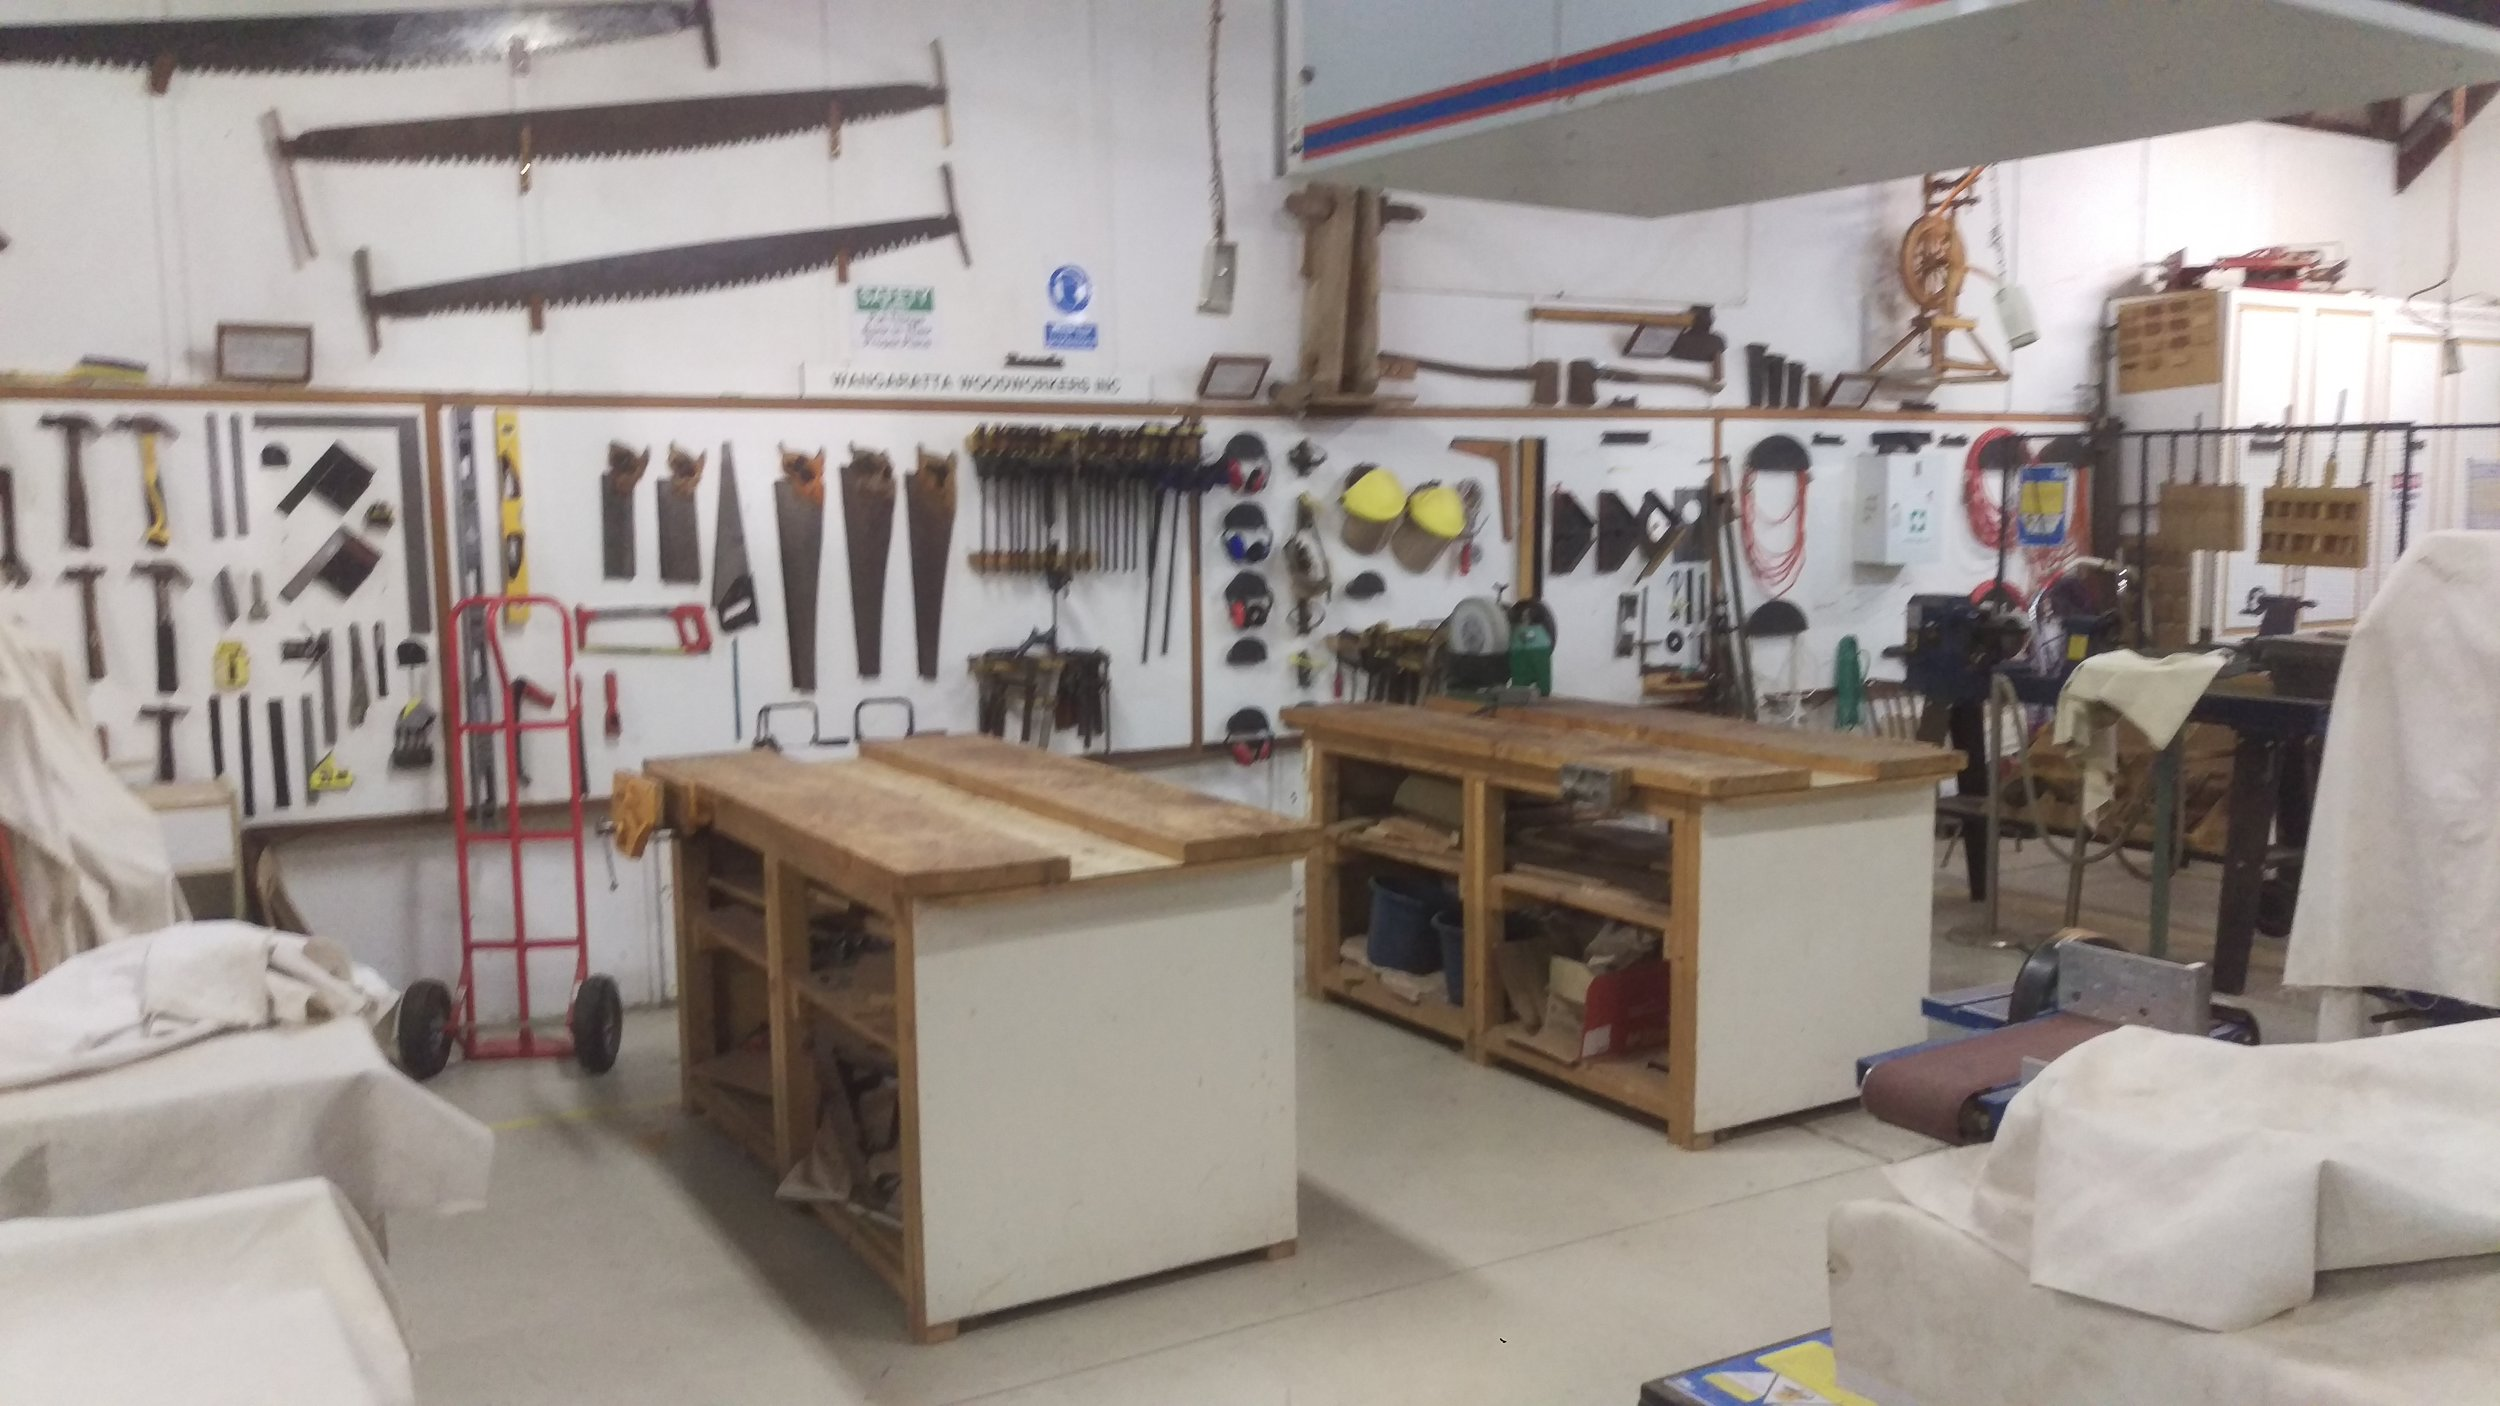 The Woodies Shed boasts a wide range of tools and equipment. From lathes and turning tools, hand tools, table saws and bandsaws, drilling, scrollsaws, planer thicknesser, jointer, sanders, pyrography, and much more.